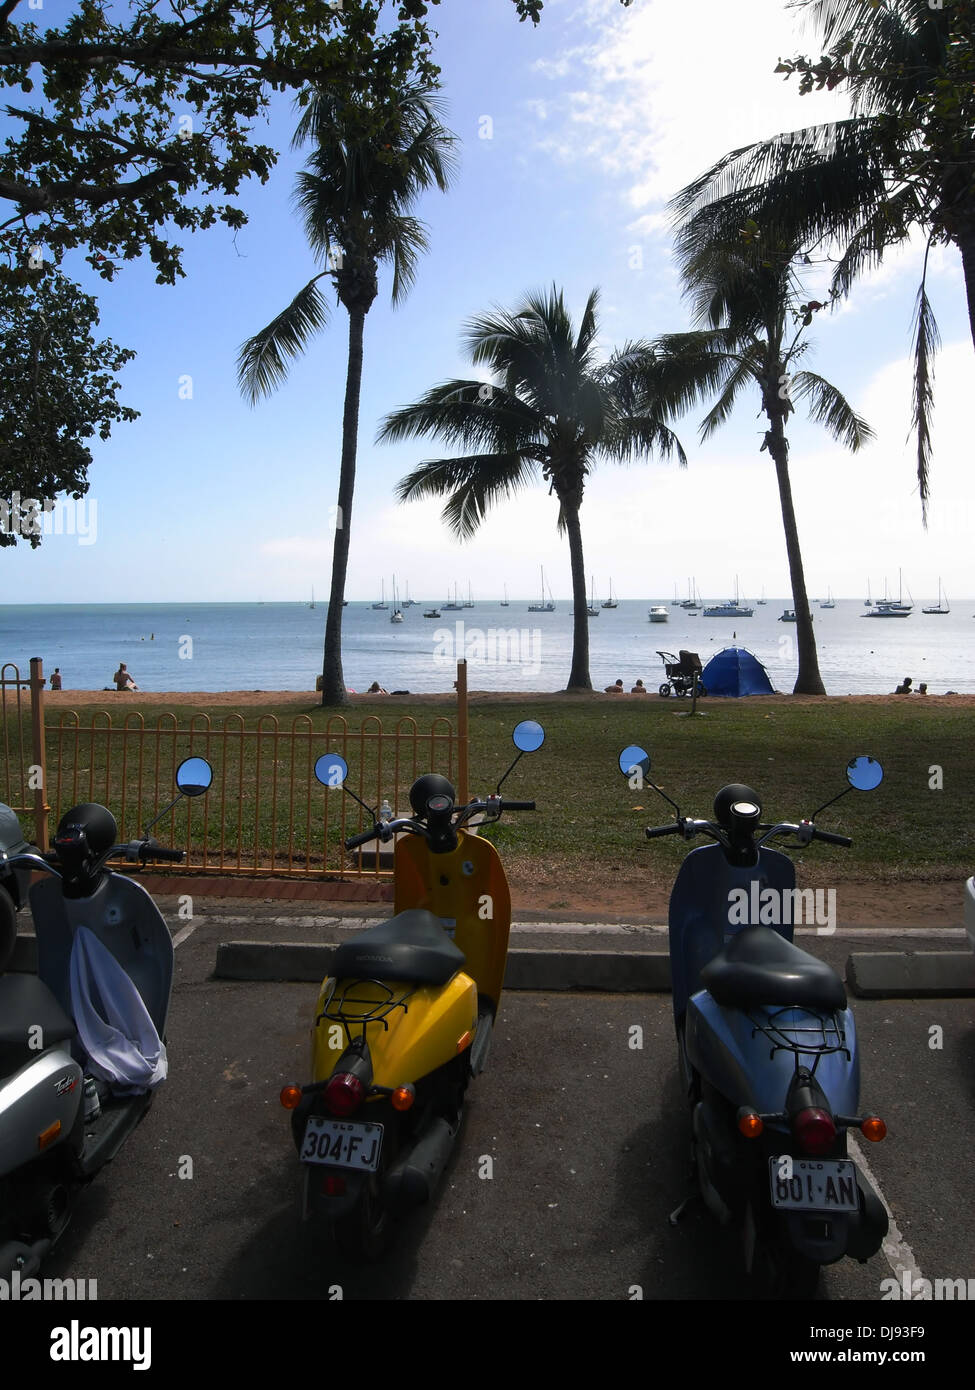 Mopeds parked on the foreshore at Horseshoe Bay, Magnetic Island, near Townsville, Queensland, Australia. No PR - Stock Image